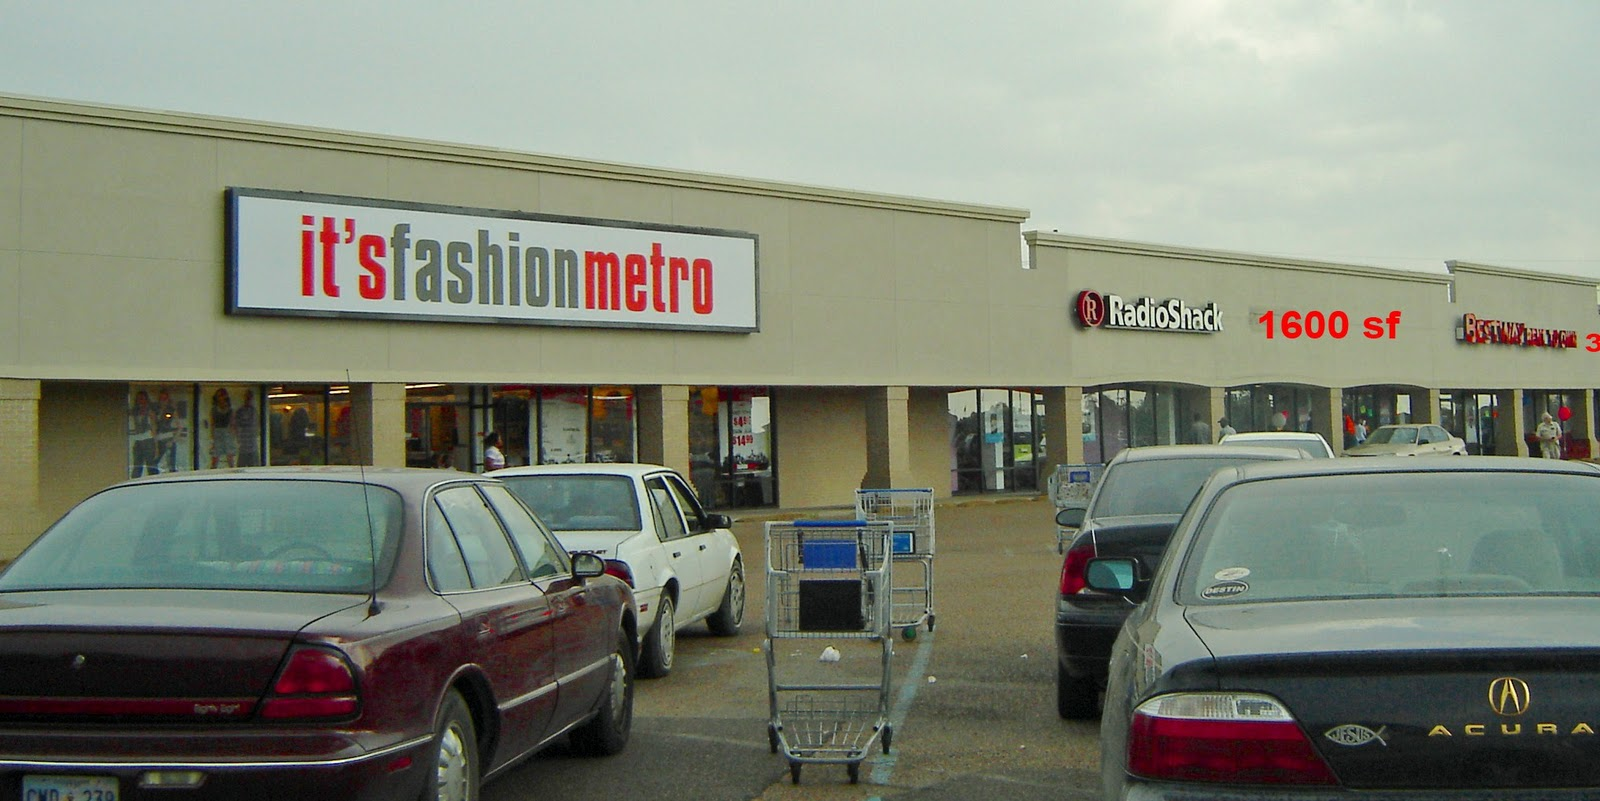 Real Estate Southeast  LLC  IT S FASHION METRO OPENS AT CLARKSDALE     IT S FASHION METRO OPENS AT CLARKSDALE COMMONS  CLARKSDALE  MS